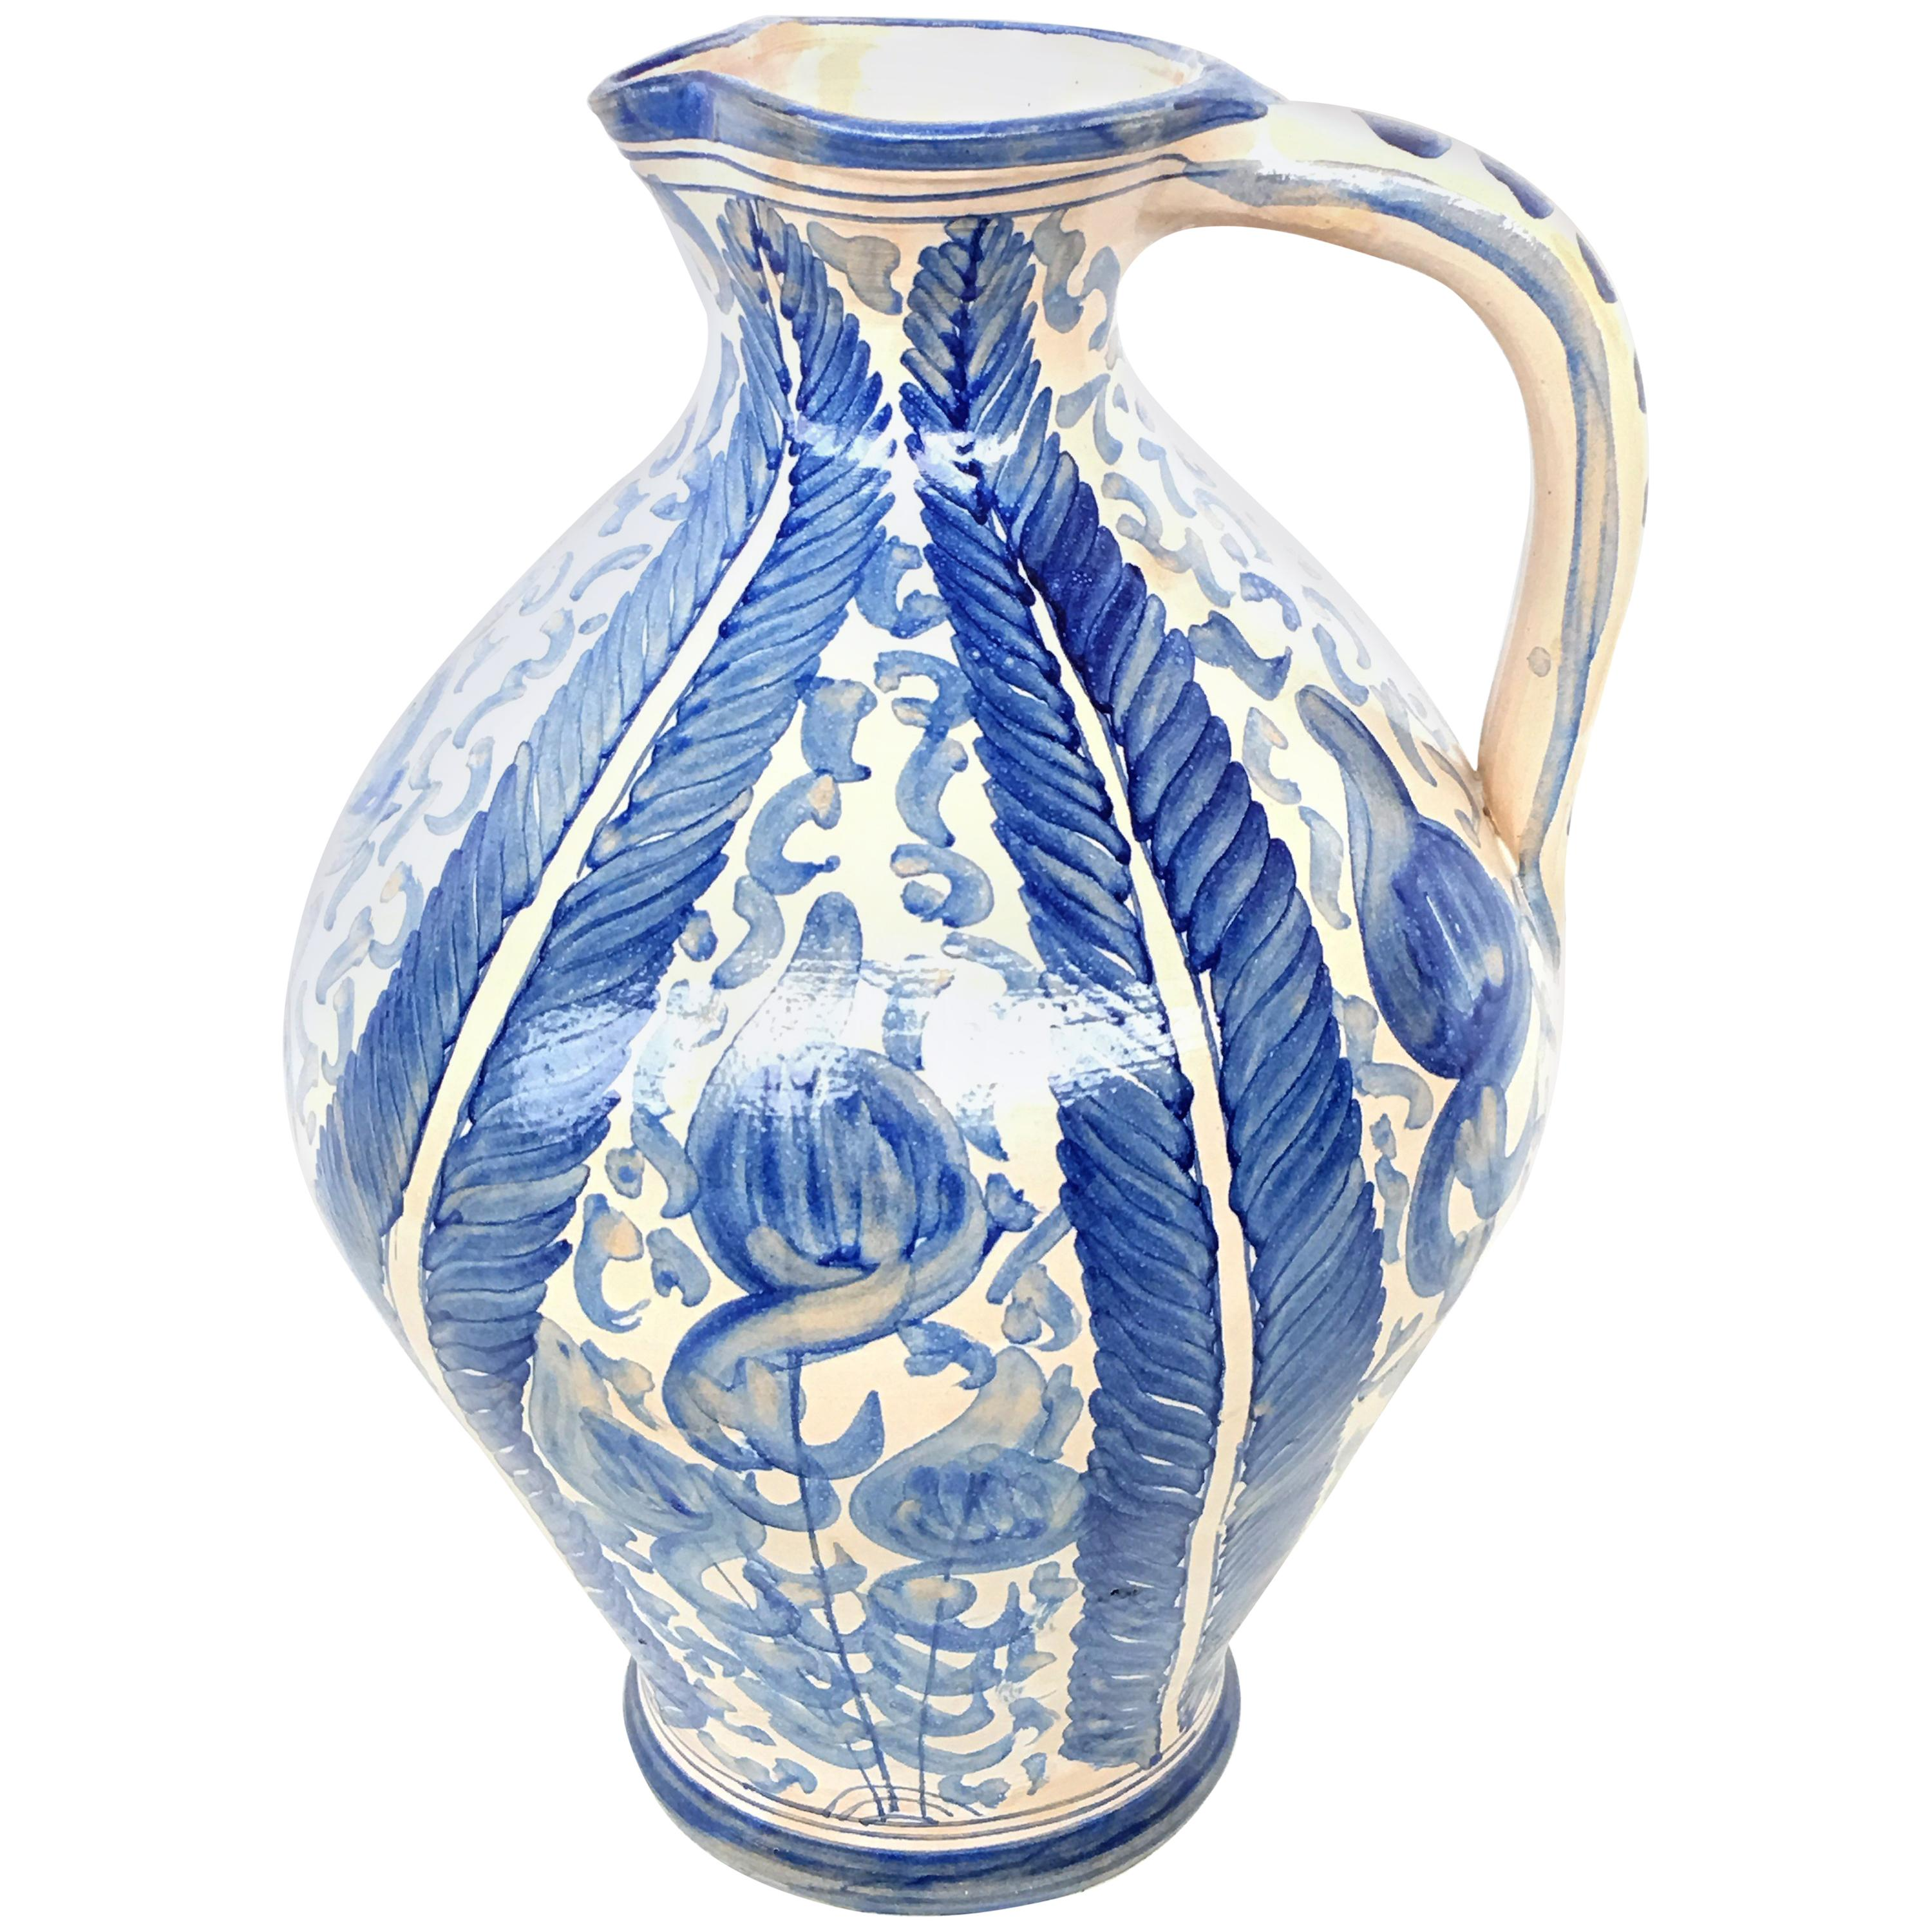 20th Century Glazed Earthenware Spanish Blue and White Painted Pitcher